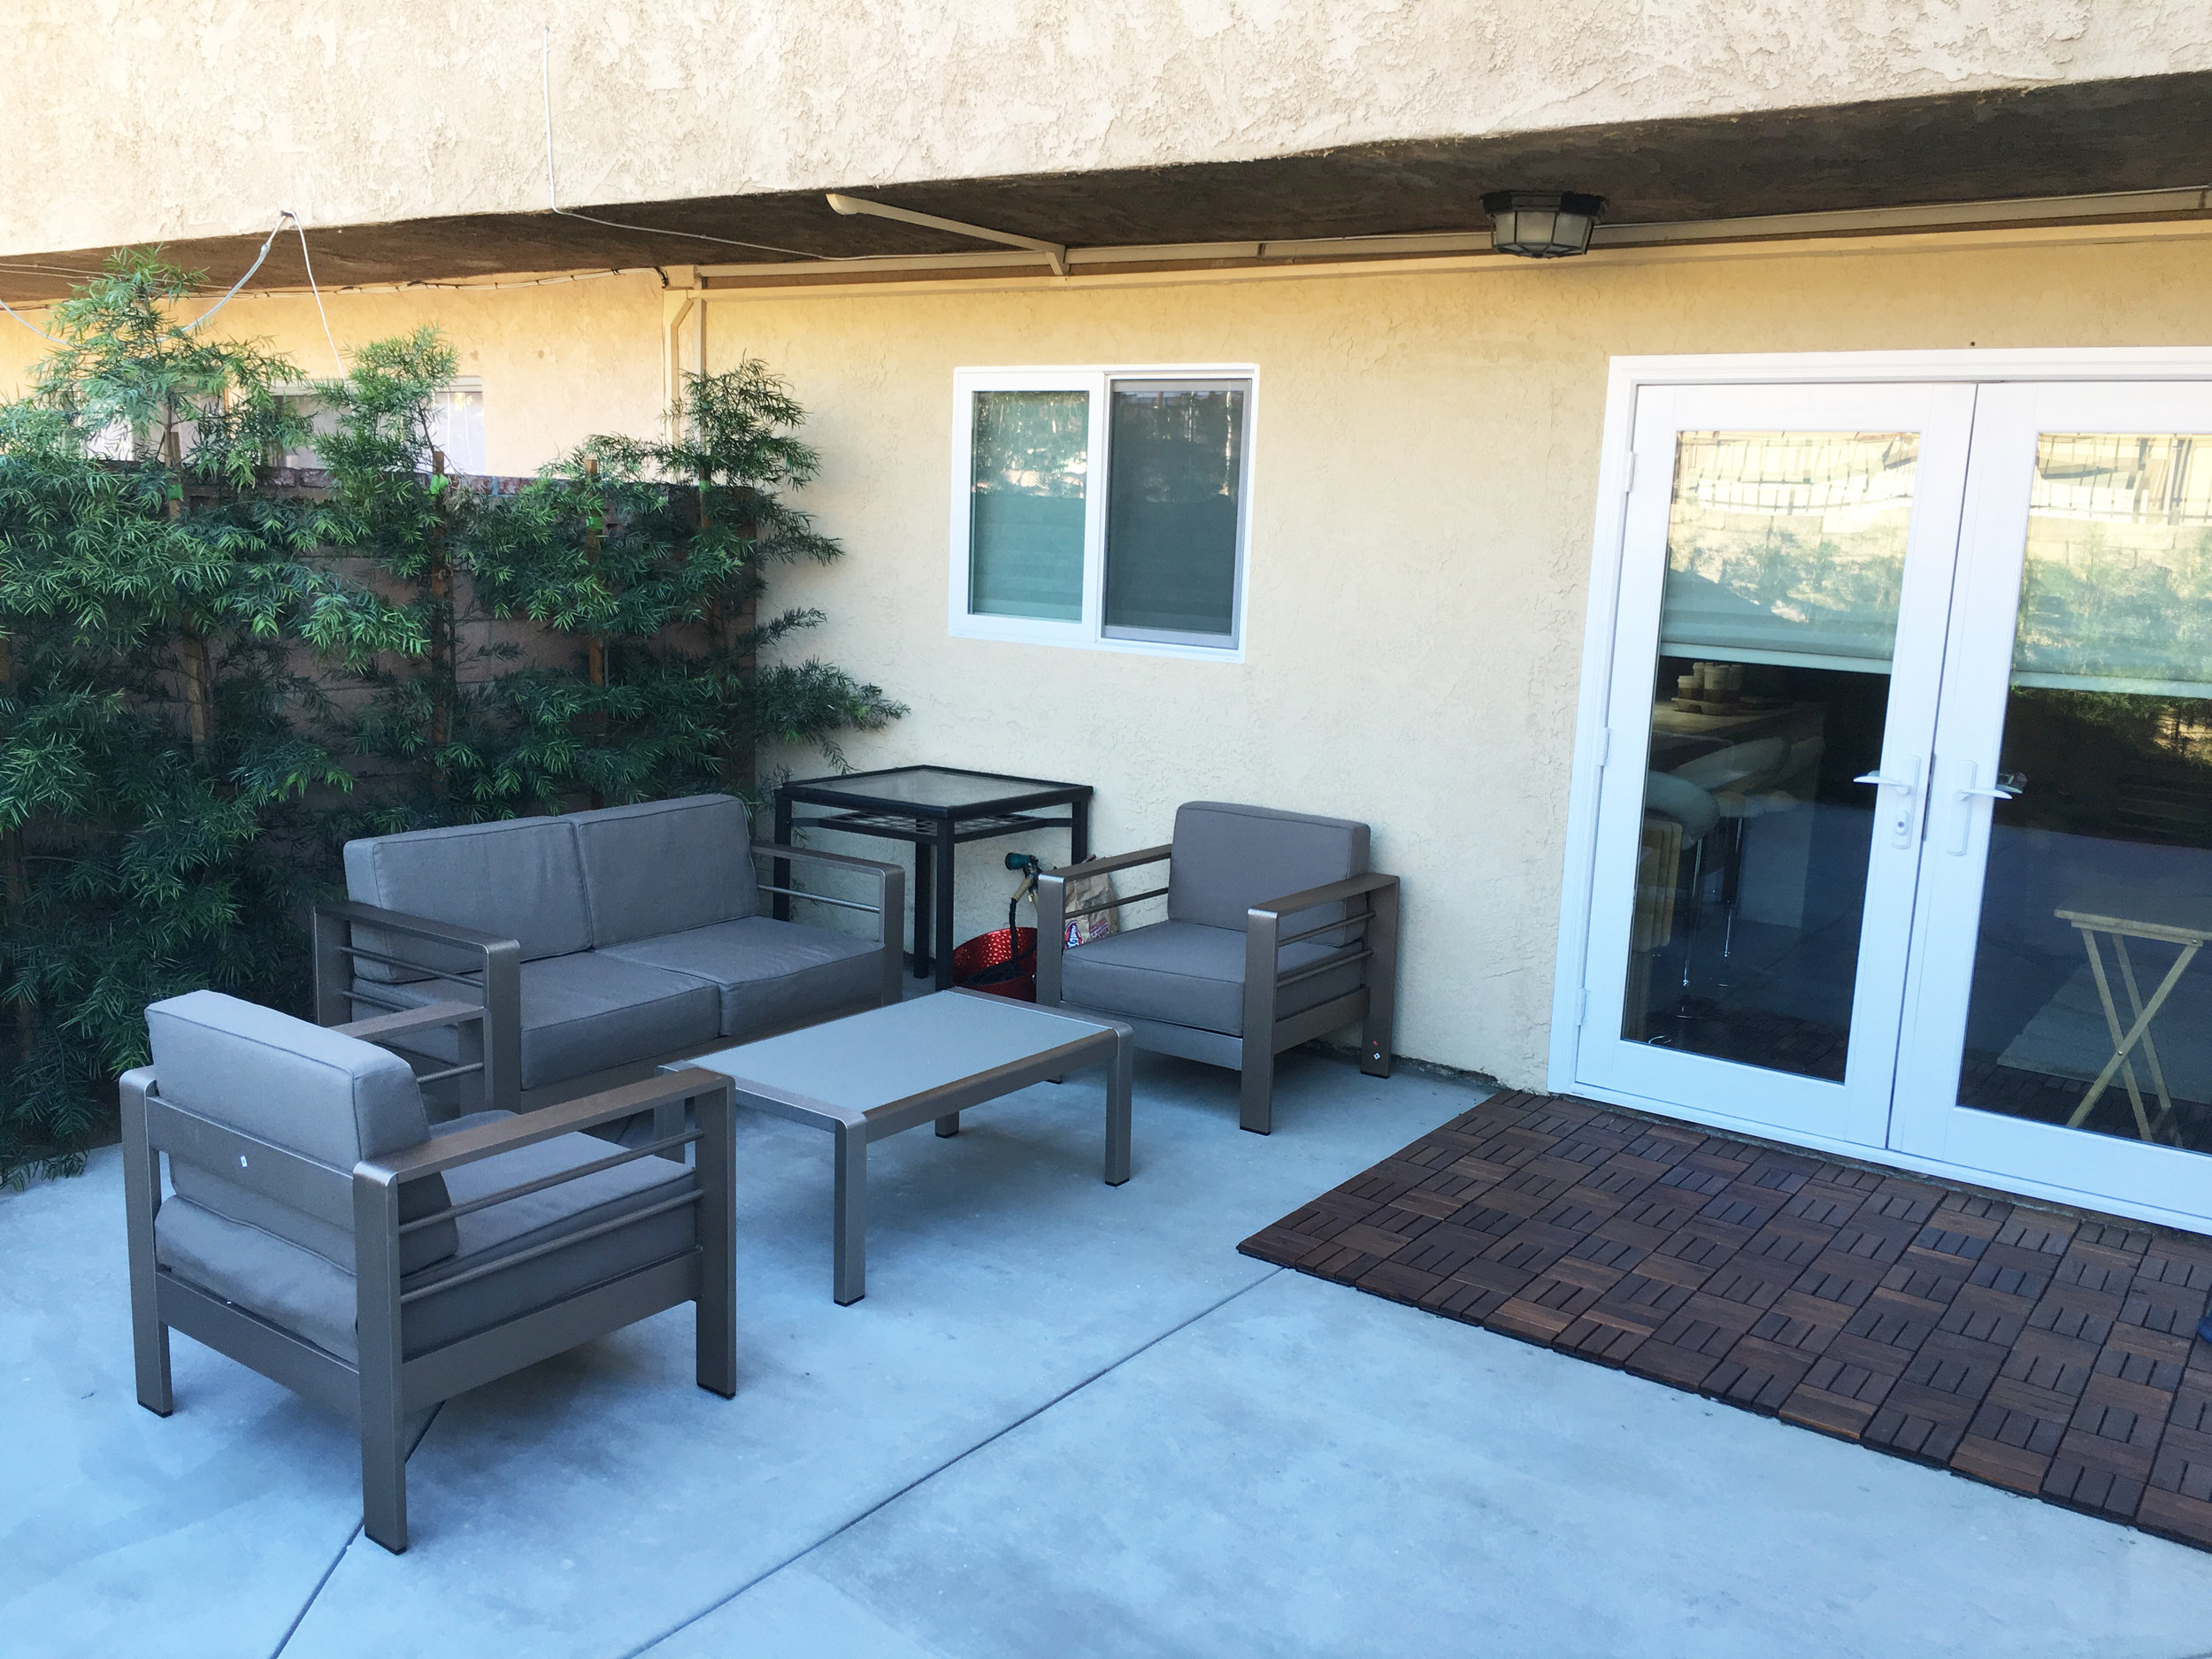 Town house exterior remodel